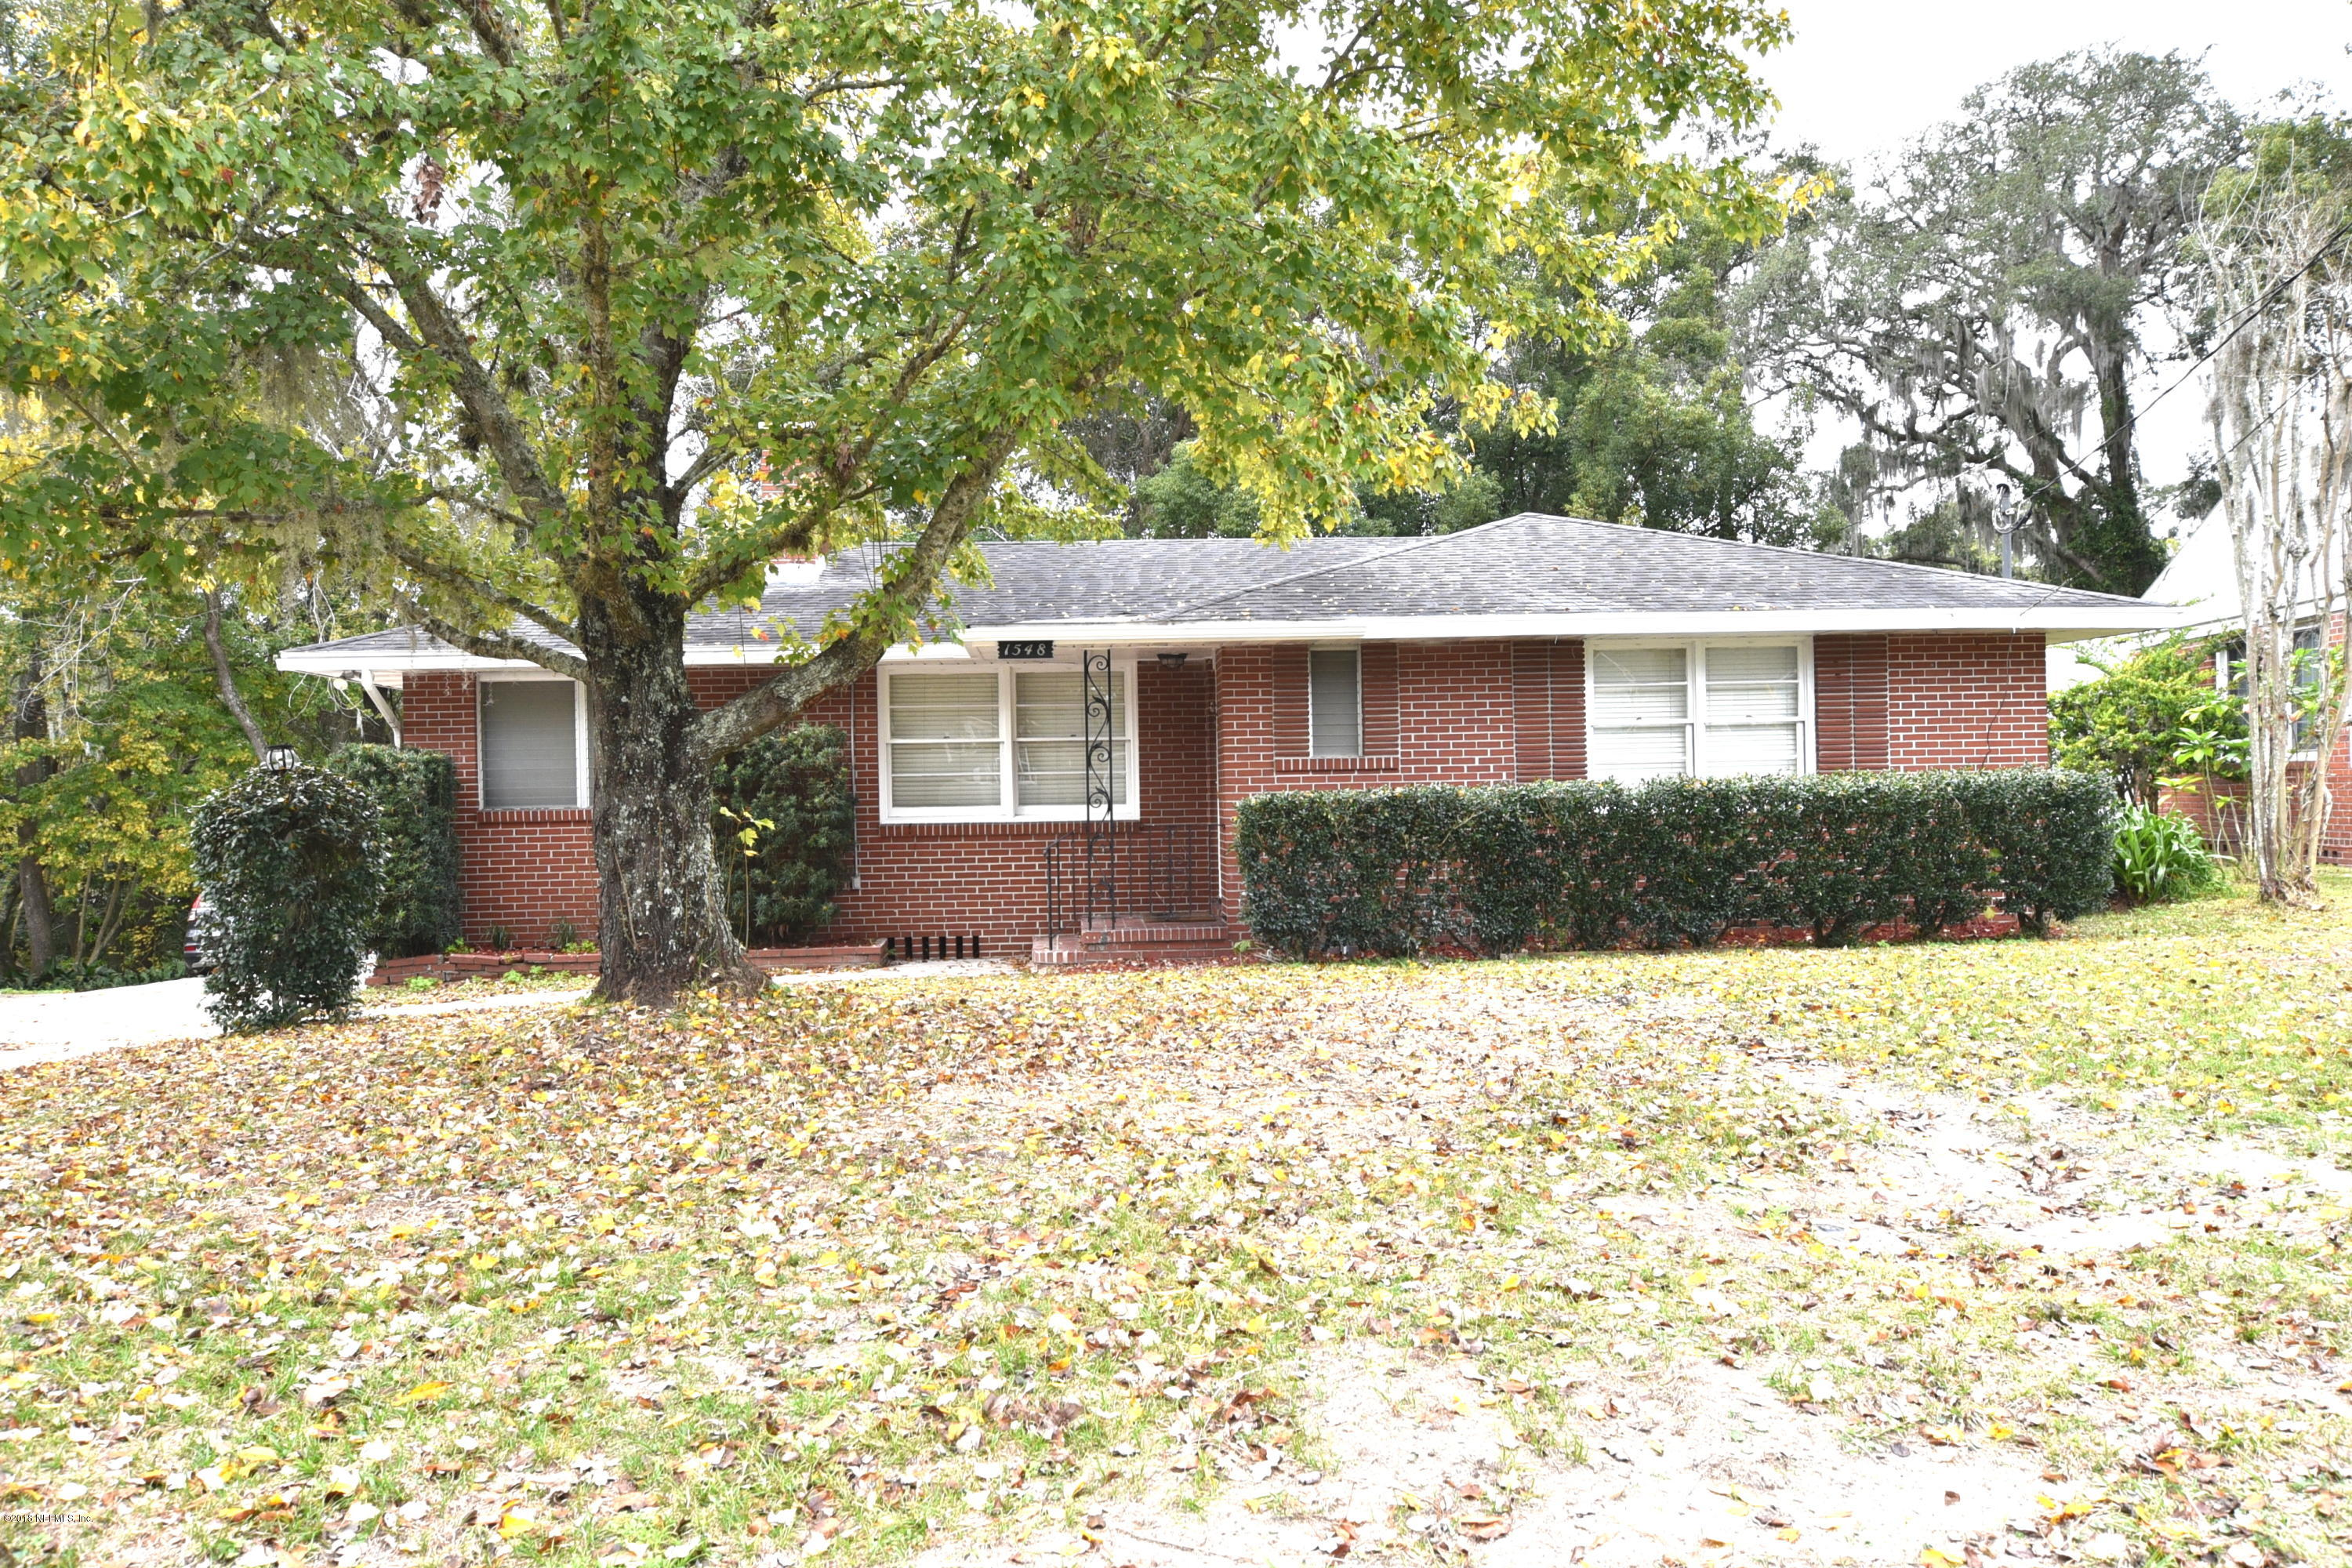 1548 GERALDINE, JACKSONVILLE, FLORIDA 32205, 3 Bedrooms Bedrooms, ,2 BathroomsBathrooms,Residential - single family,For sale,GERALDINE,972195